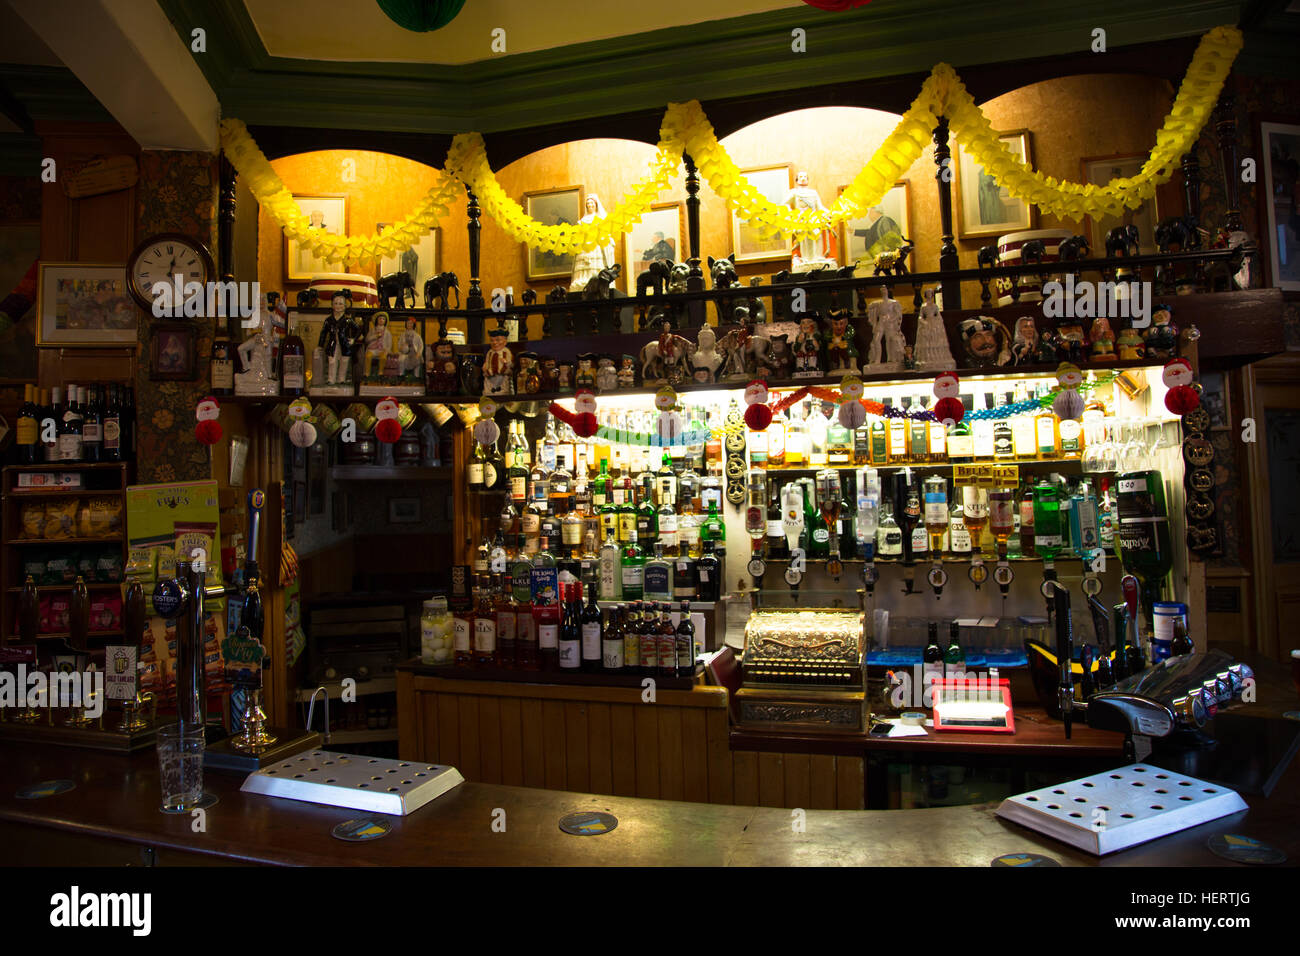 The interior of an English Victorian Pub/Bar with festive decorations, taken in Durham, England. - Stock Image